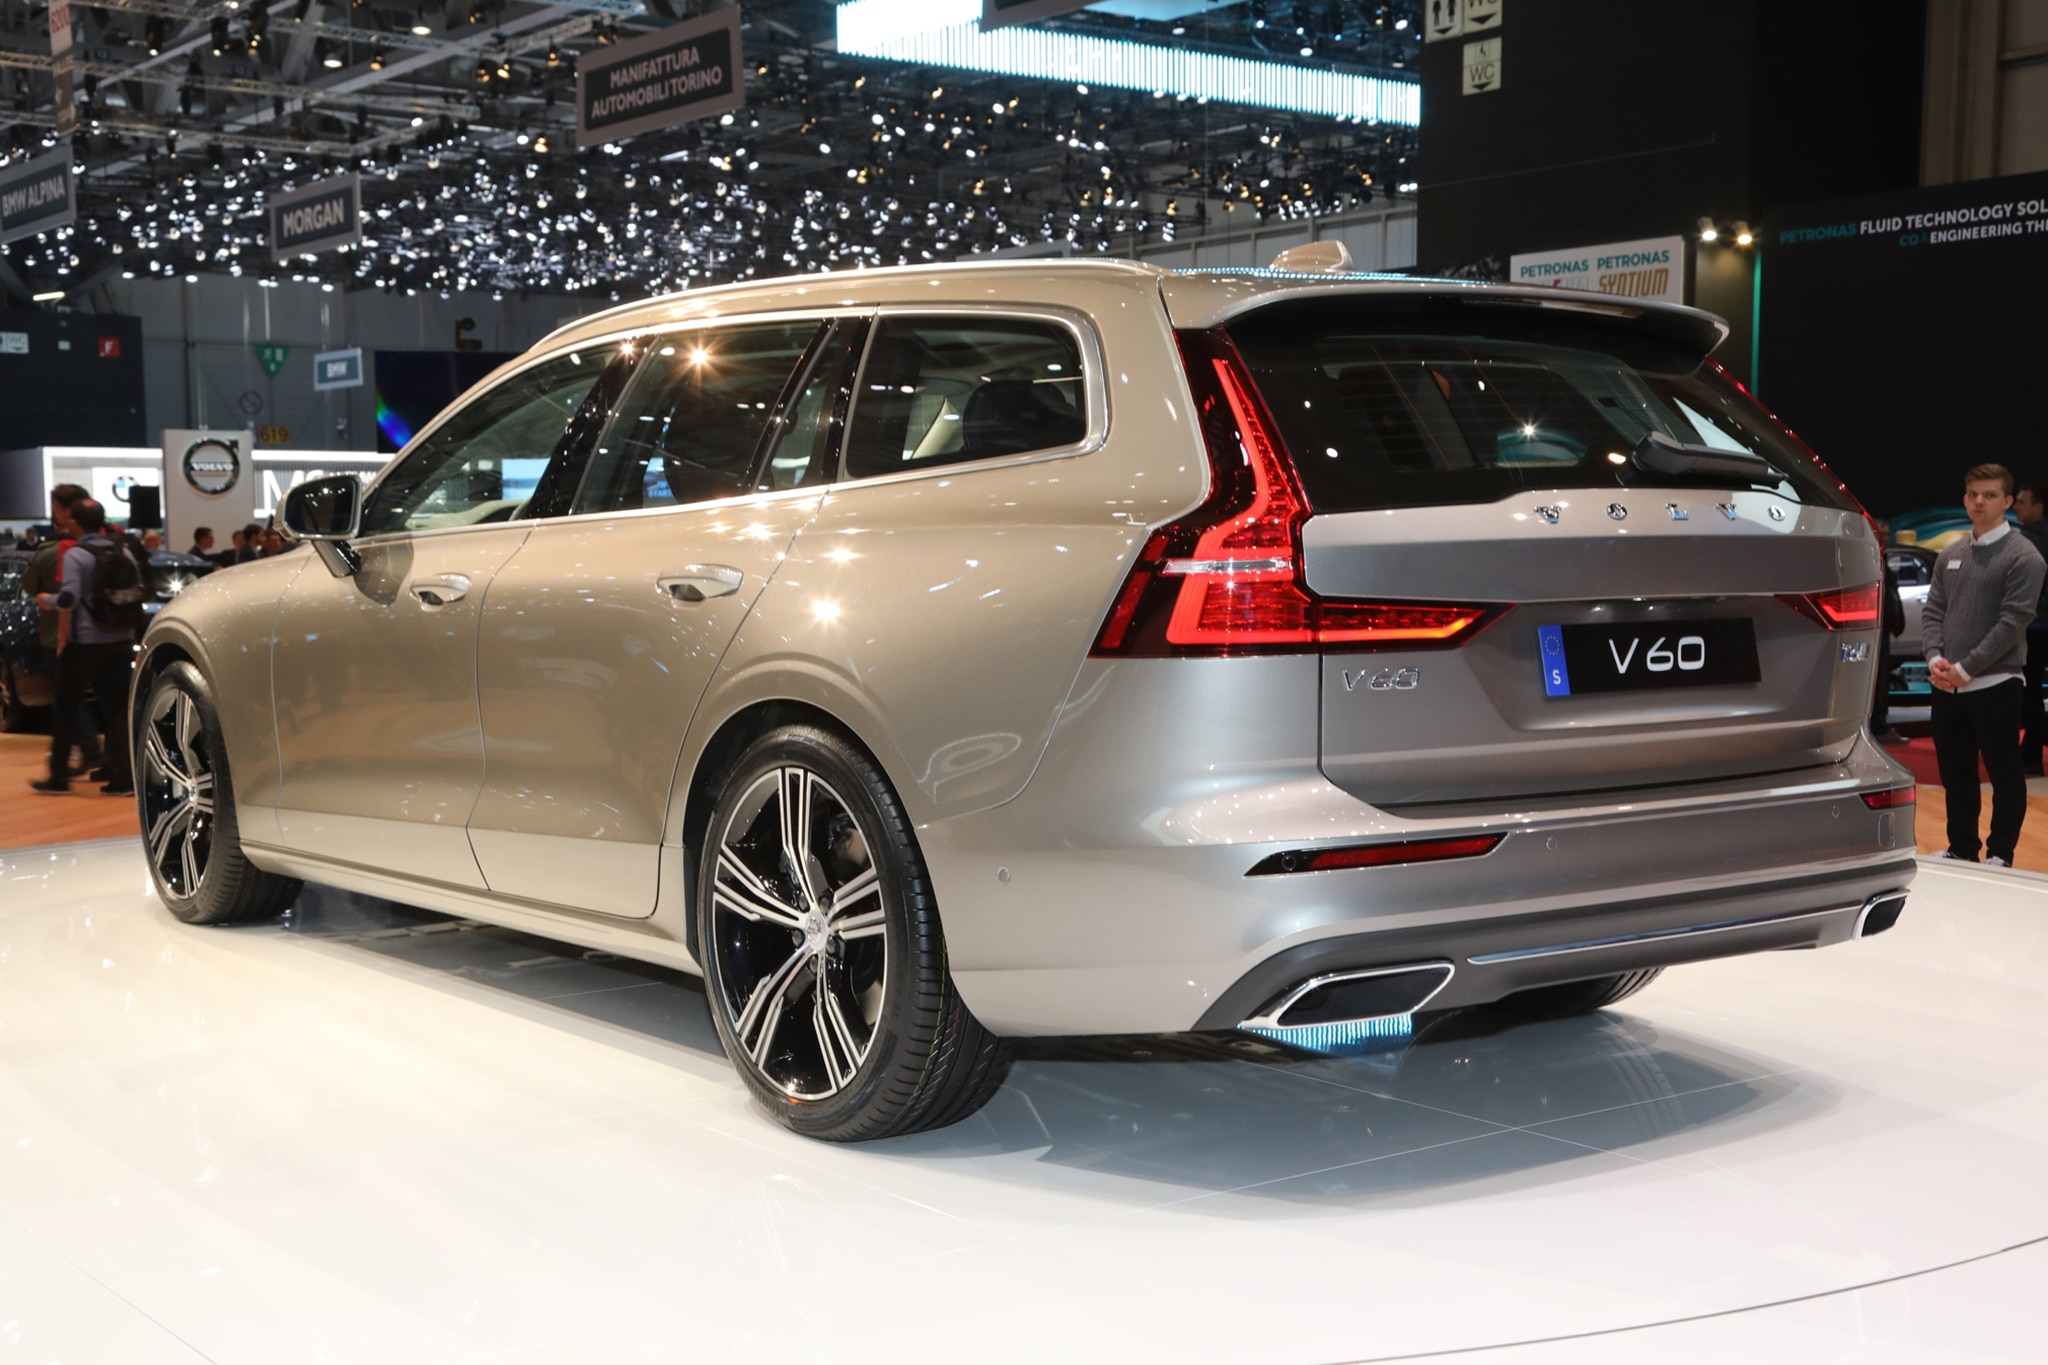 2019 Volvo V60 Joins the Geneva Auto Show | Automobile Magazine